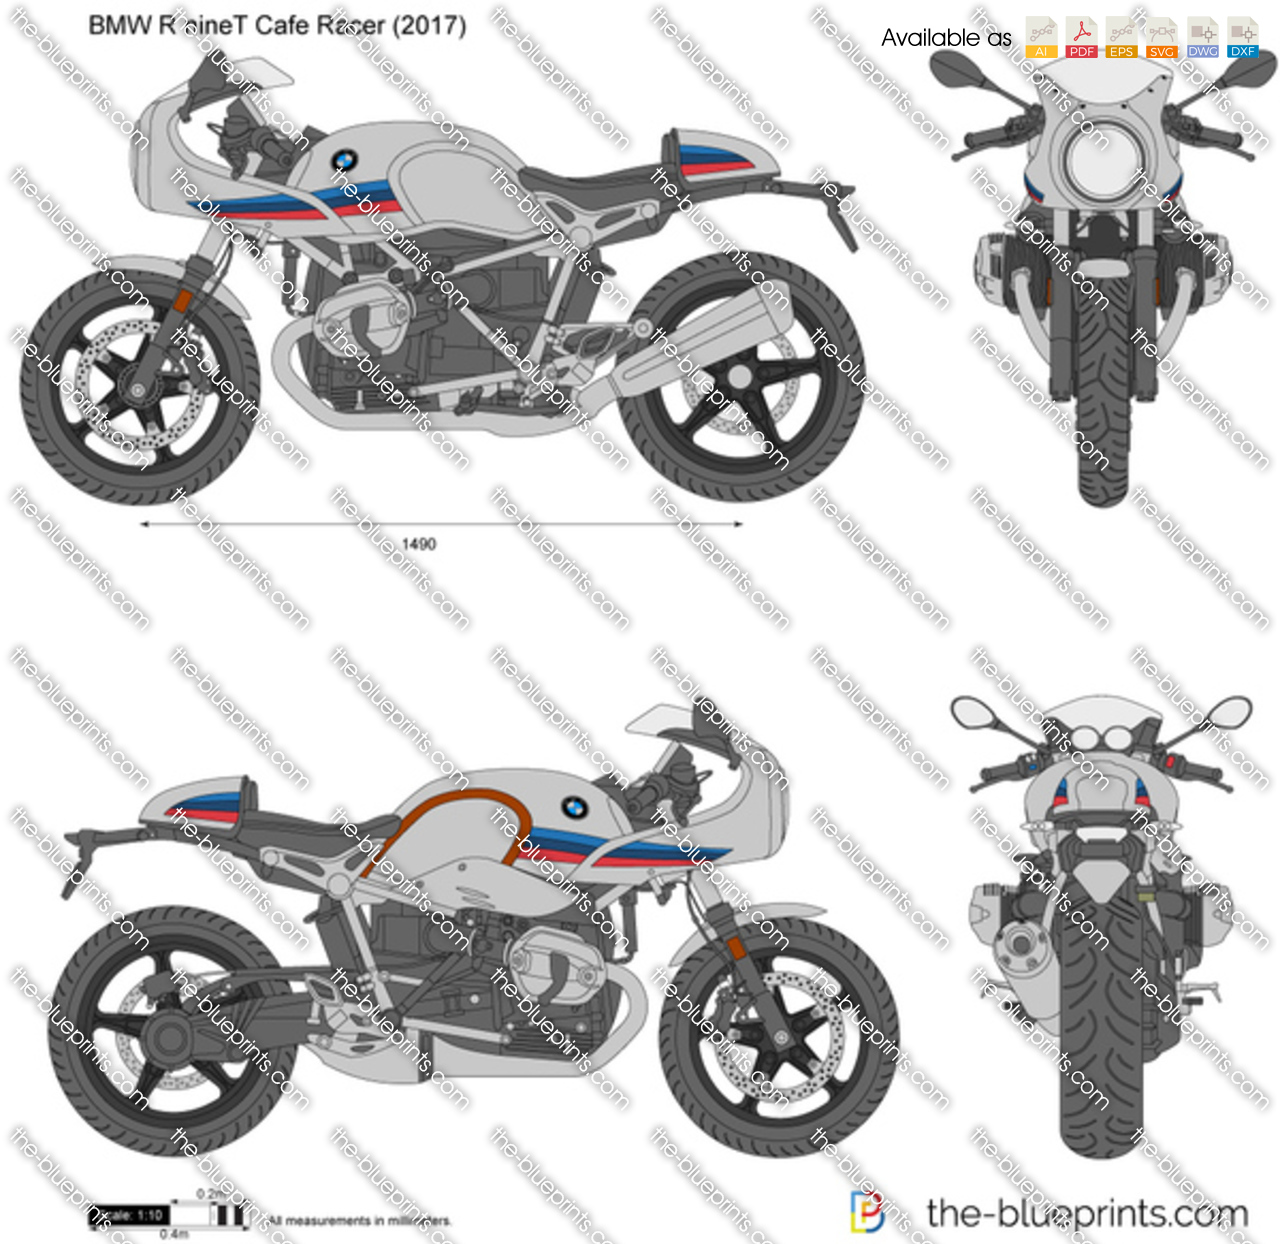 BMW R nineT Cafe Racer 2019